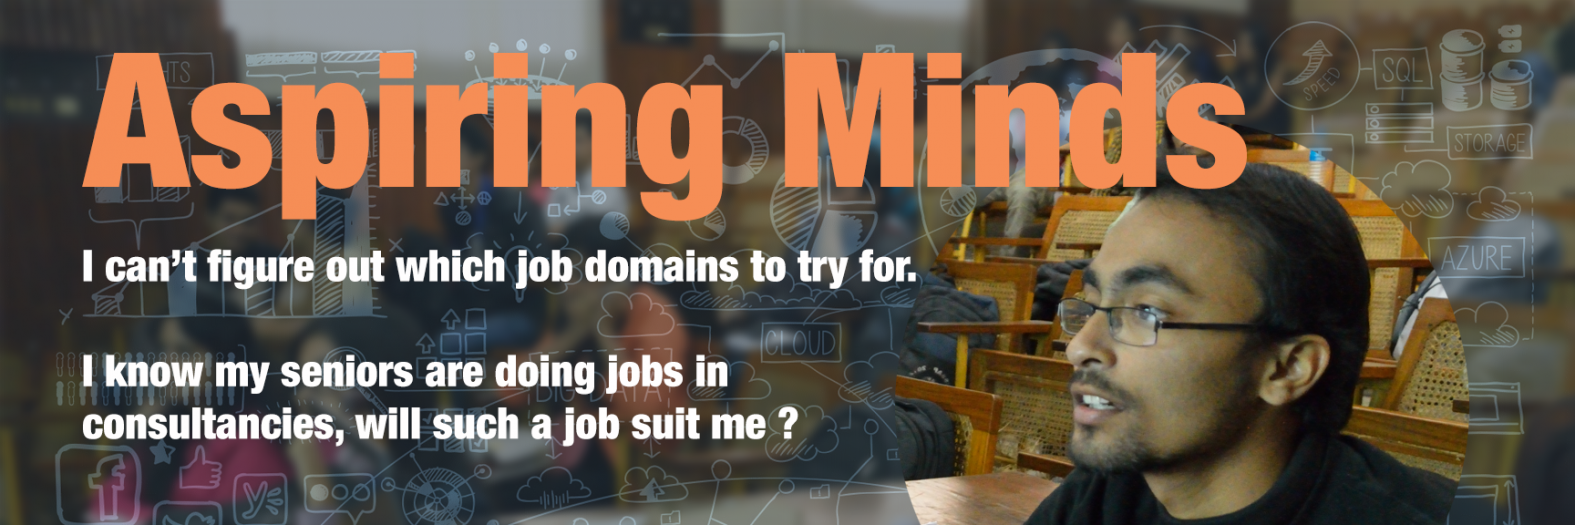 Aspiring Minds, I can't figure out which job domains to try for.  I know my seniors are doing jobs in  consultancies, will such a job suit me ?